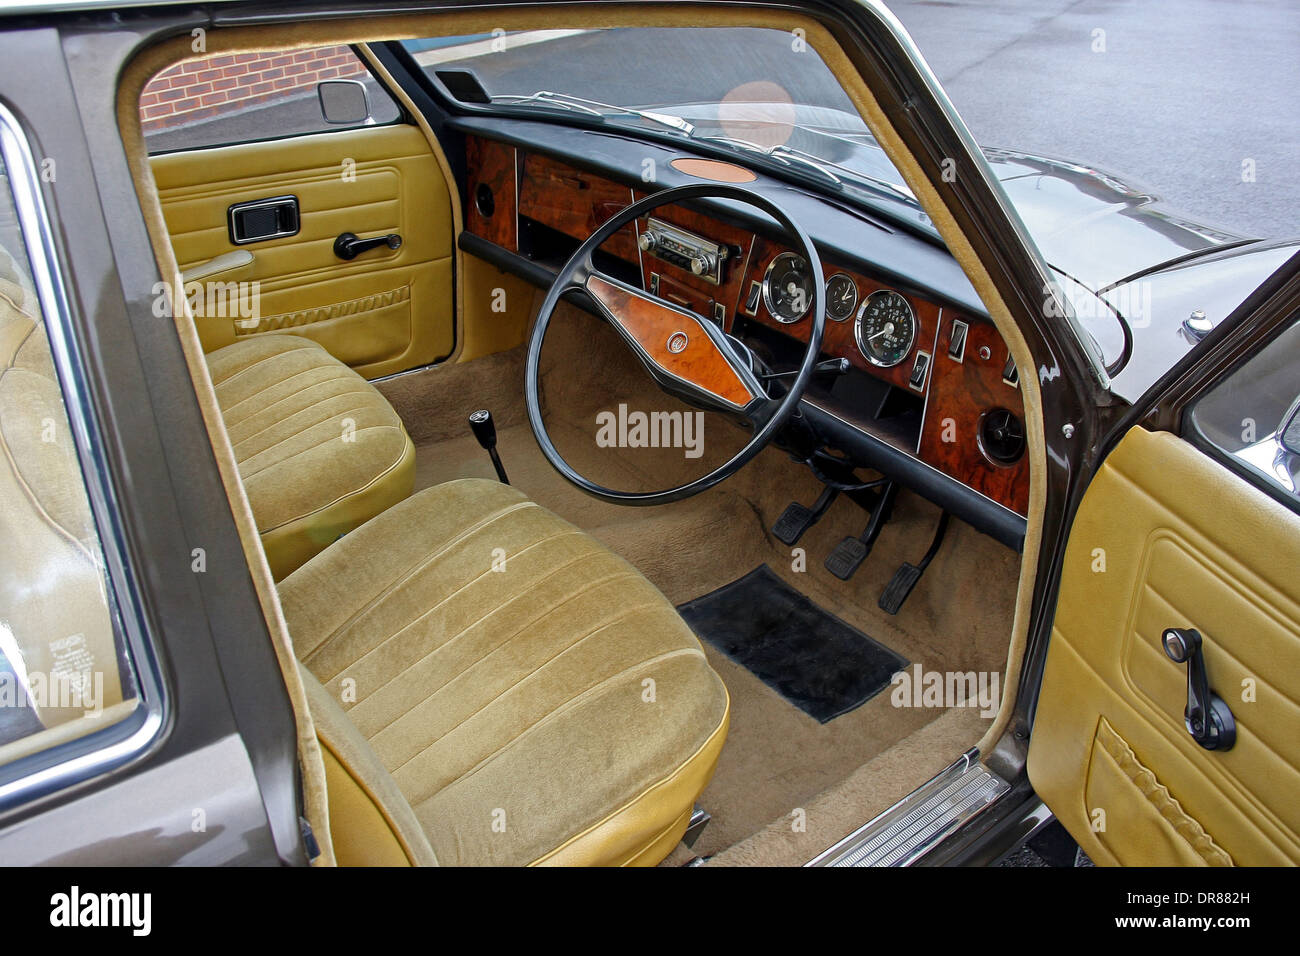 1974 wolseley six wolseley s next to last car interior view stock photo royalty free image. Black Bedroom Furniture Sets. Home Design Ideas